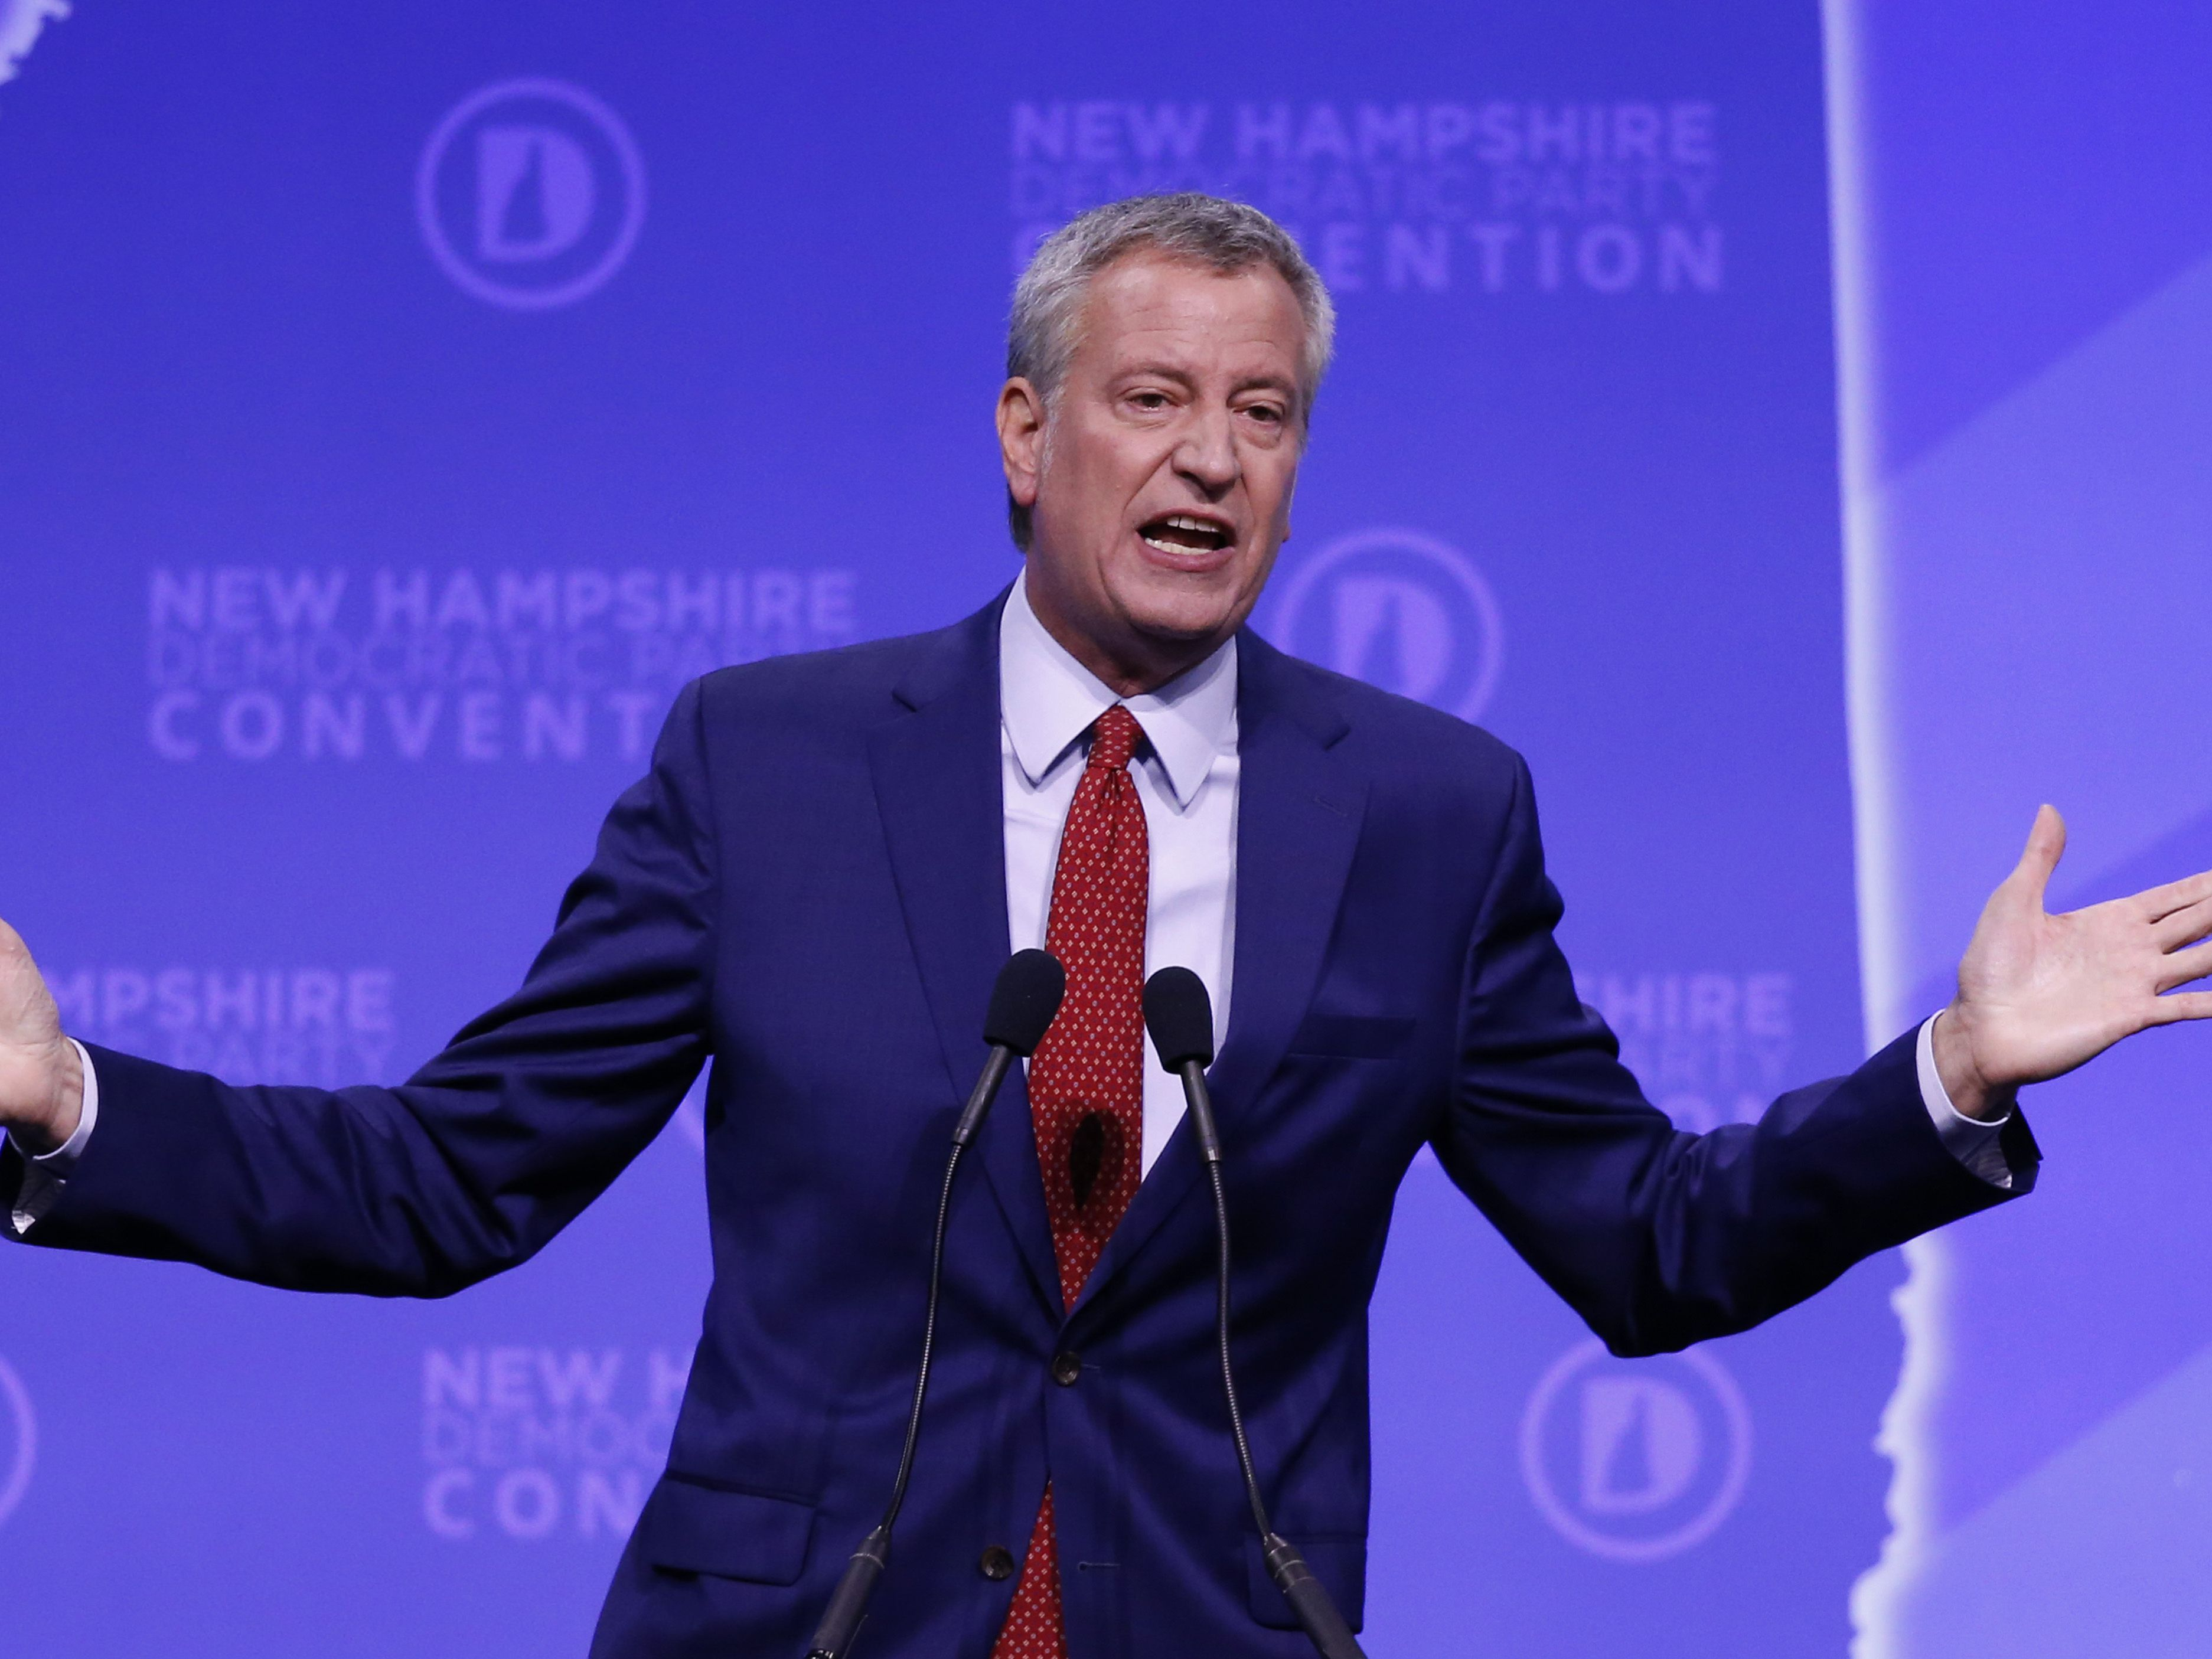 NYC Mayor Bill de Blasio ends presidential campaign